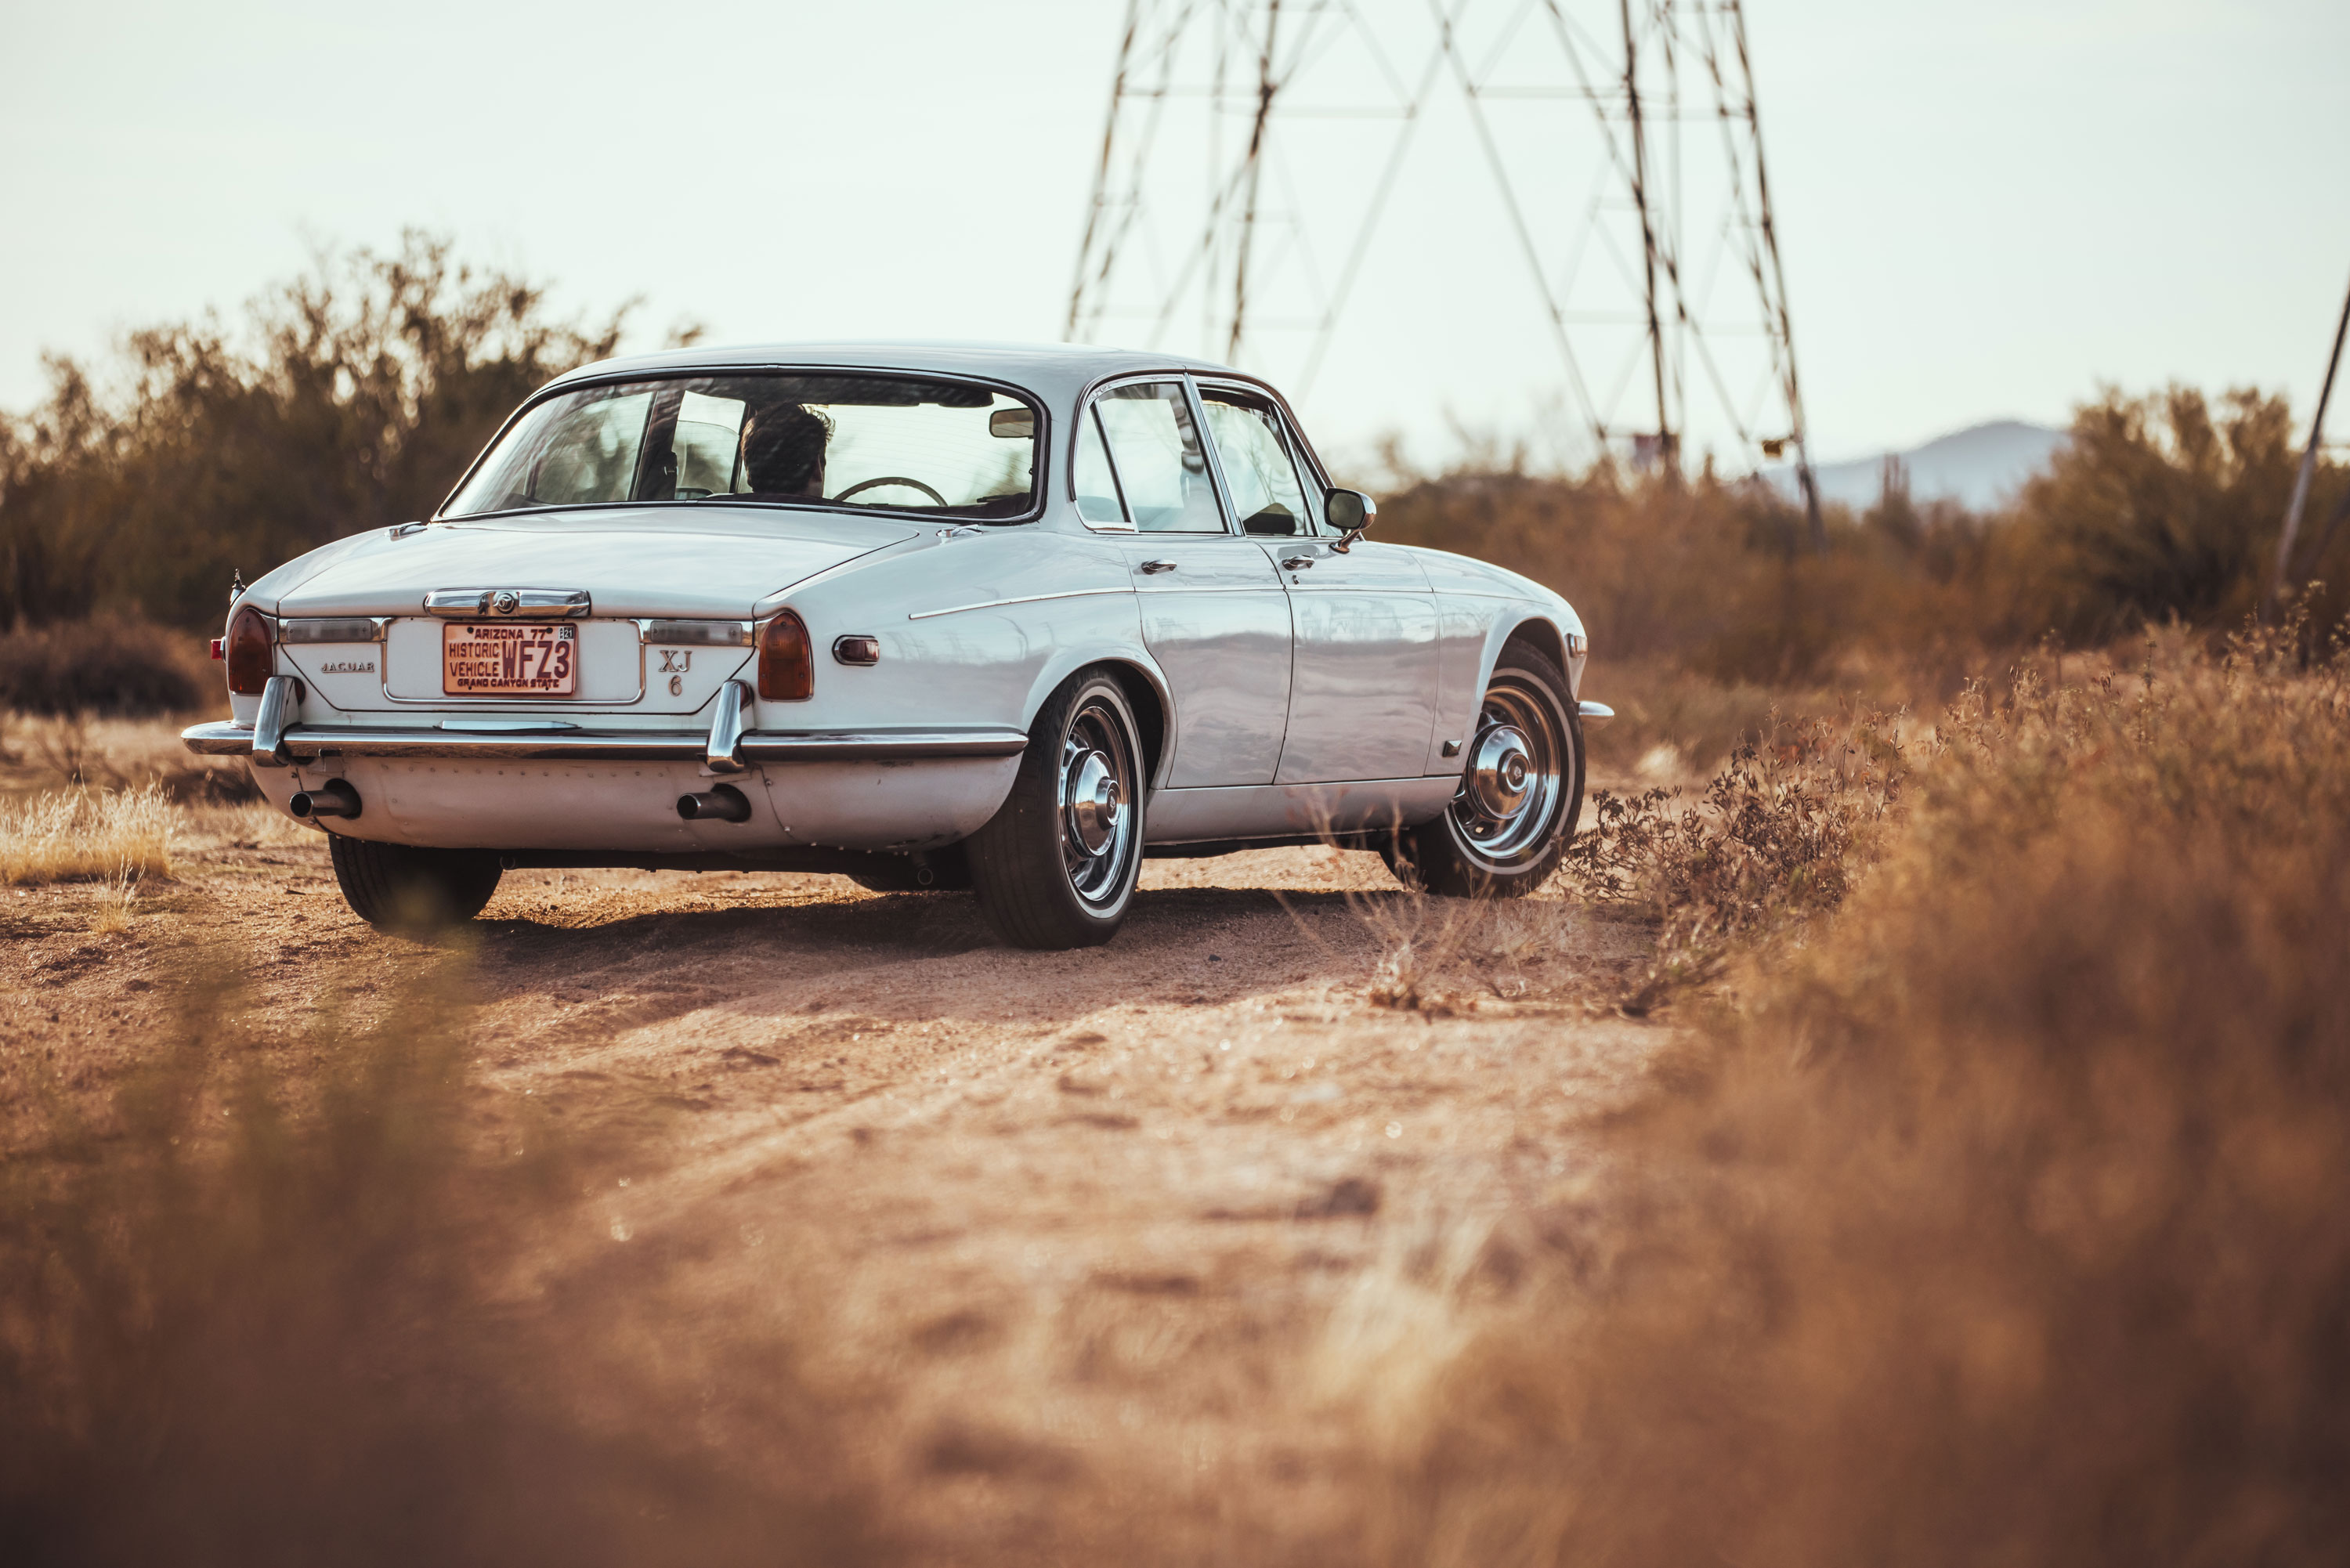 1974 Jaguar XJ6 driving away in the desert